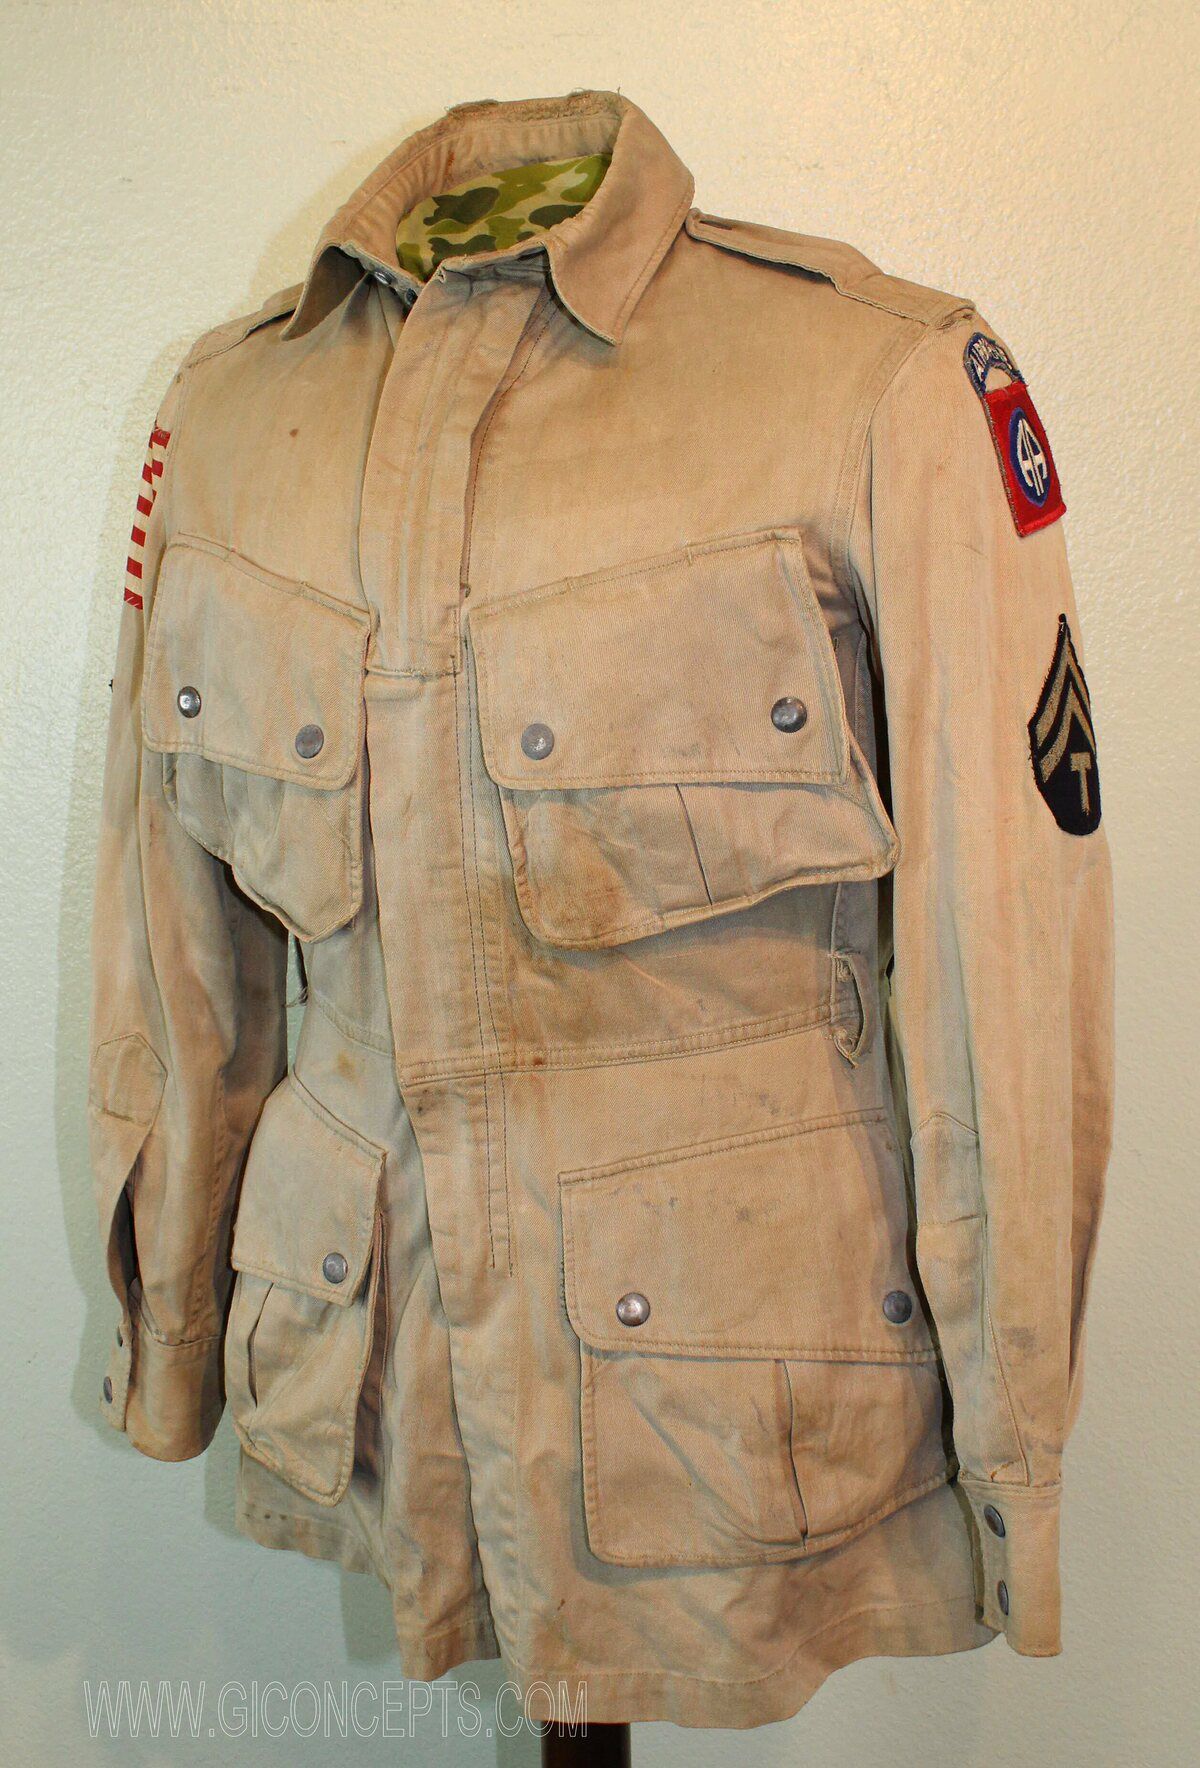 82nd Airborne T-5 M42 Paratrooper Jacket